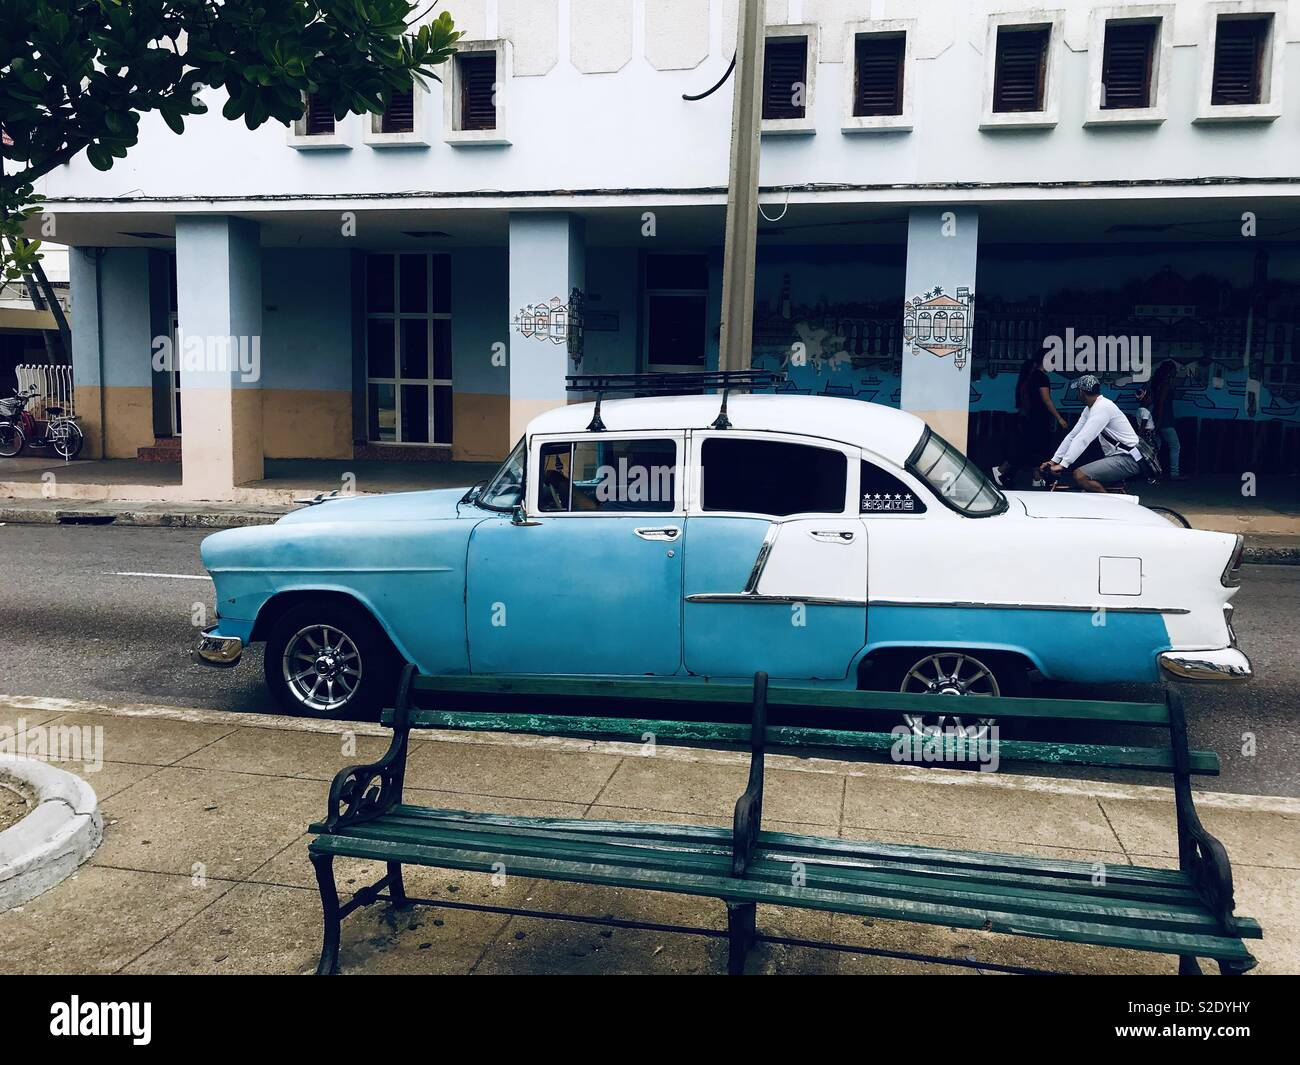 Blue and white classic car in Cienfuegos Cuba - Stock Image